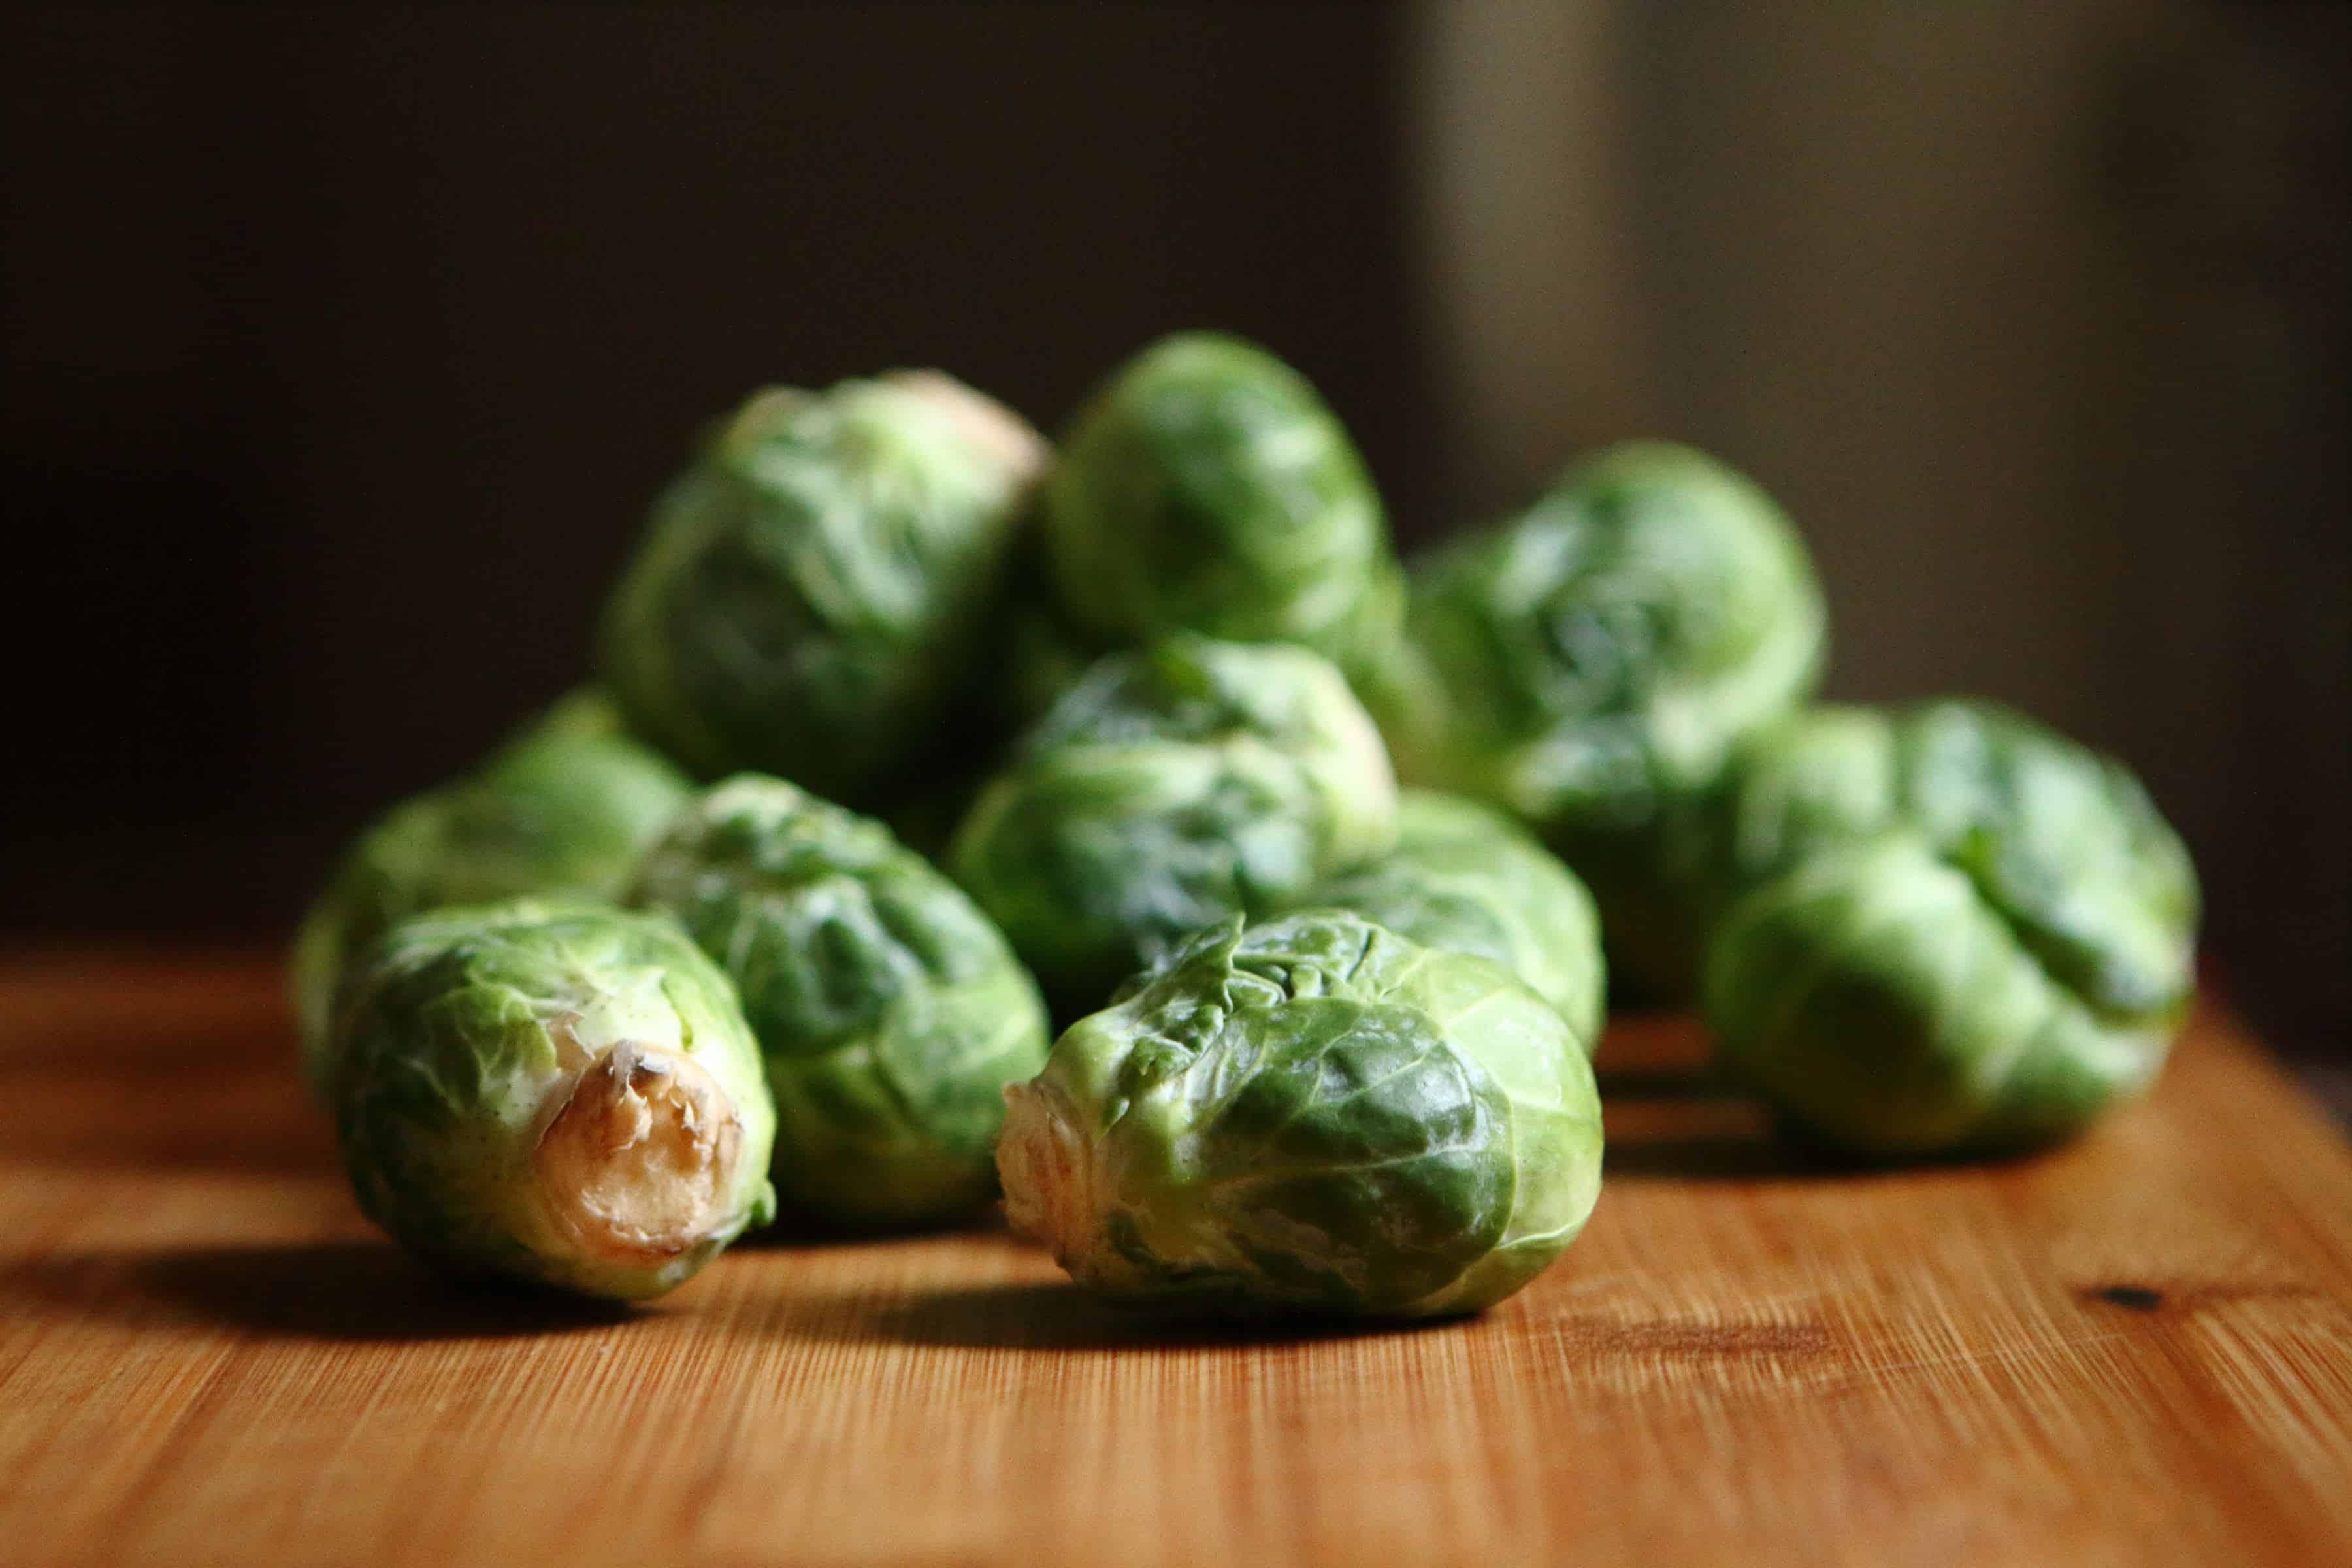 brussel sprouts as appetizers